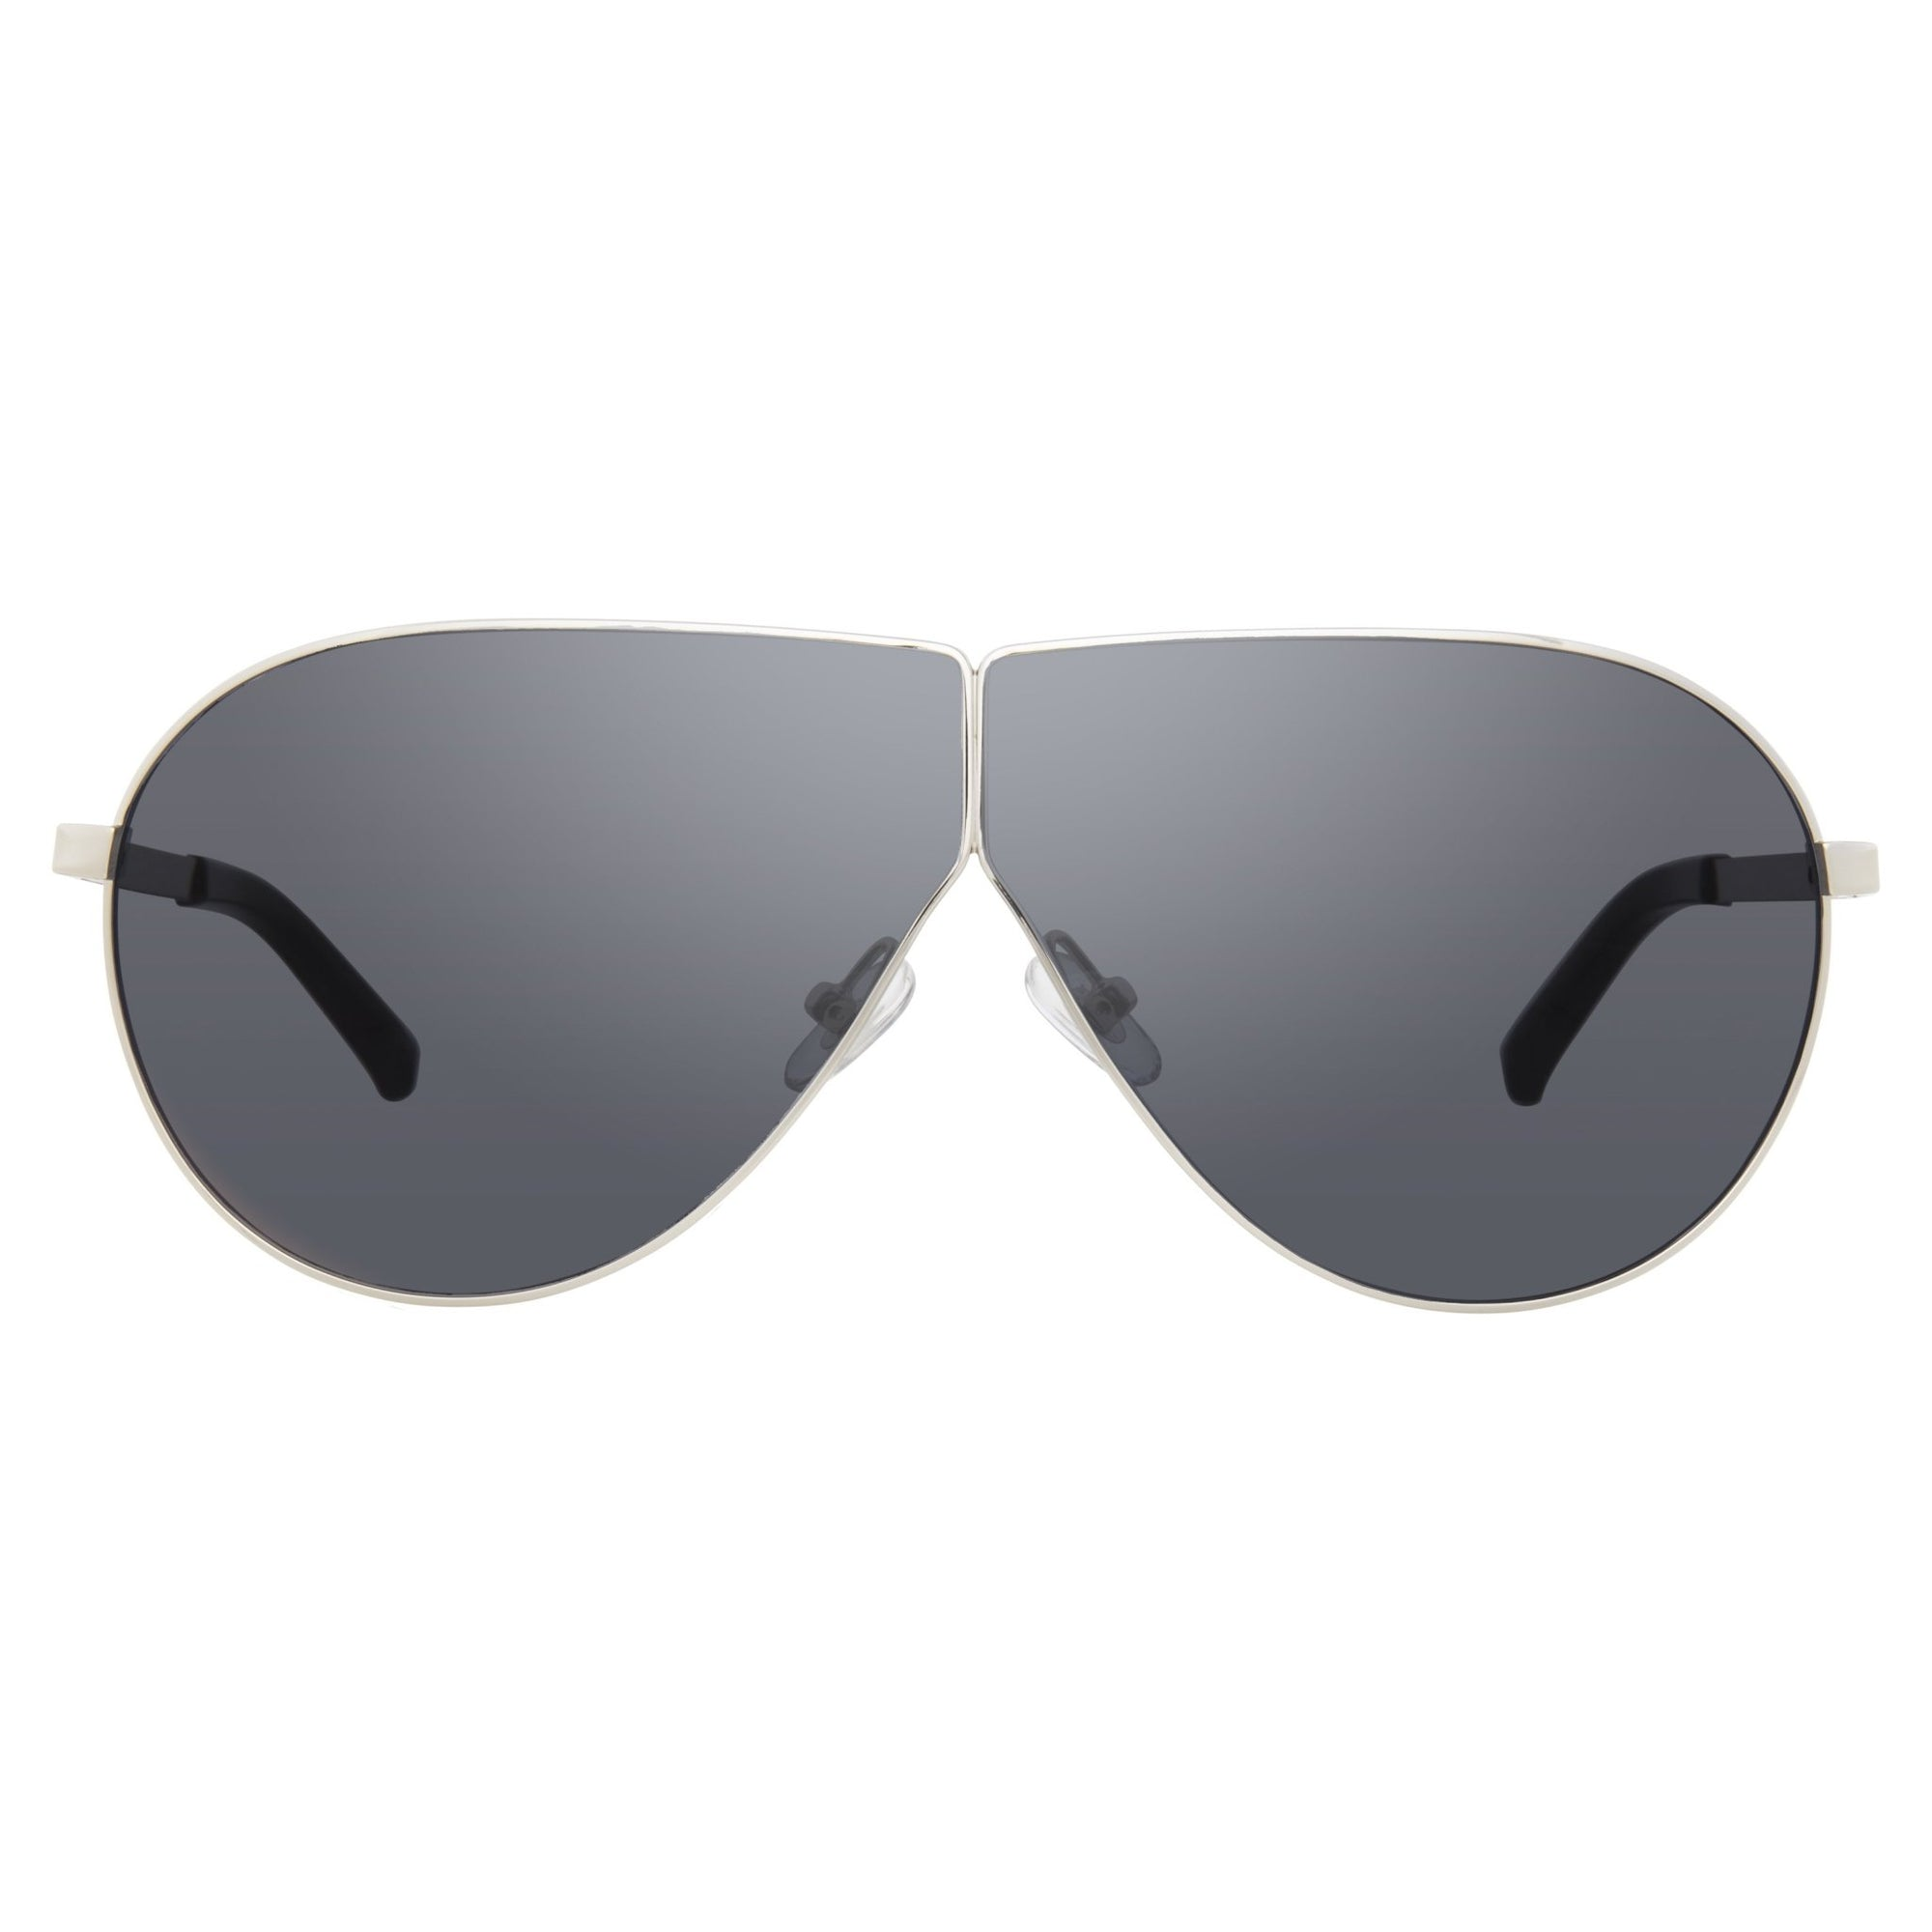 Phillip Lim Sunglasses Women's Shield Shape Silver Frame with CAT4 Black Lenses PL171C7SUN - Watches & Crystals